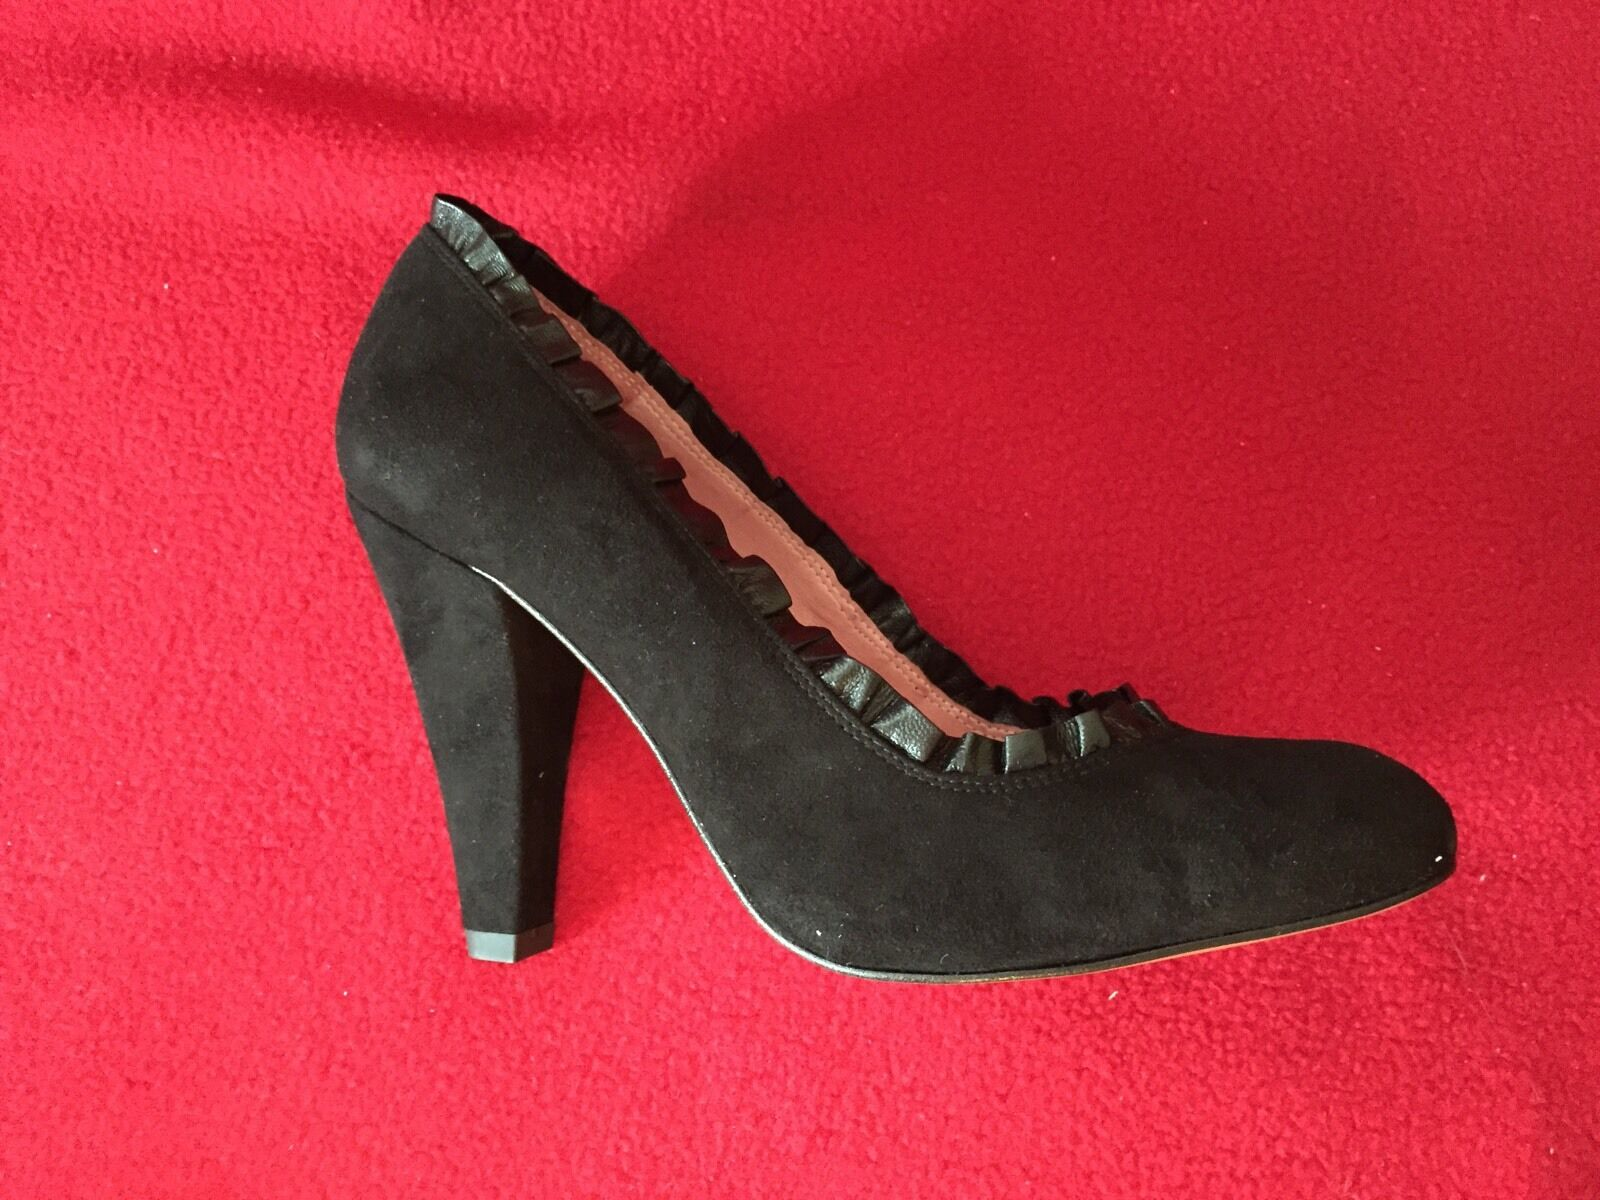 Jeffrey Campbell Campbell Campbell Black Suede Leather Ruffle Trim Round Toe Pump Heel NEW 7.5 8c176e